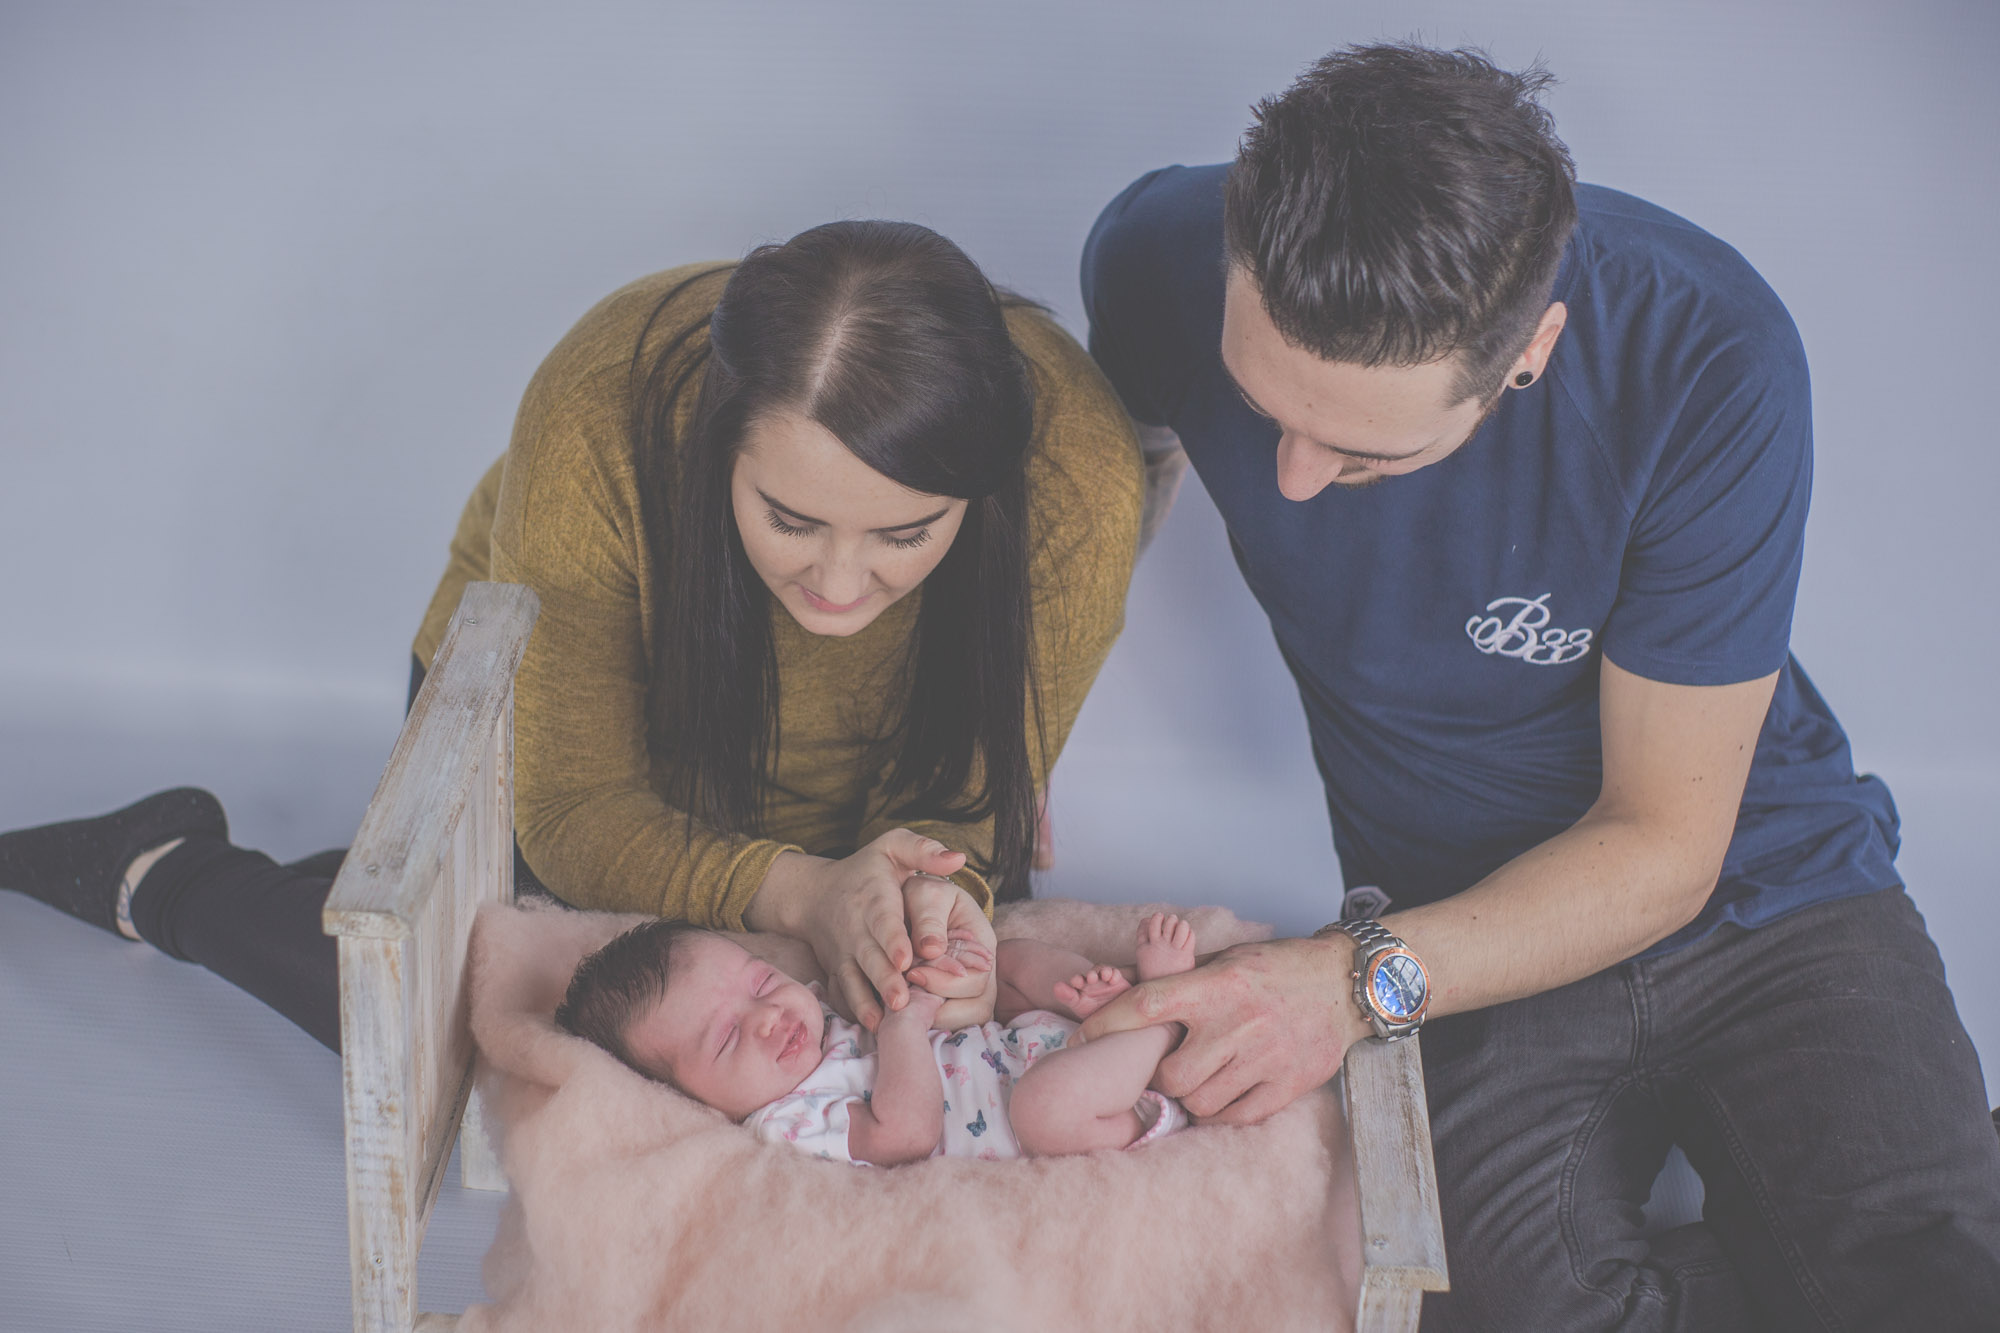 newborn-baby-family-photo-bradford-west-yorkshire-chicca-photography-10.jpg